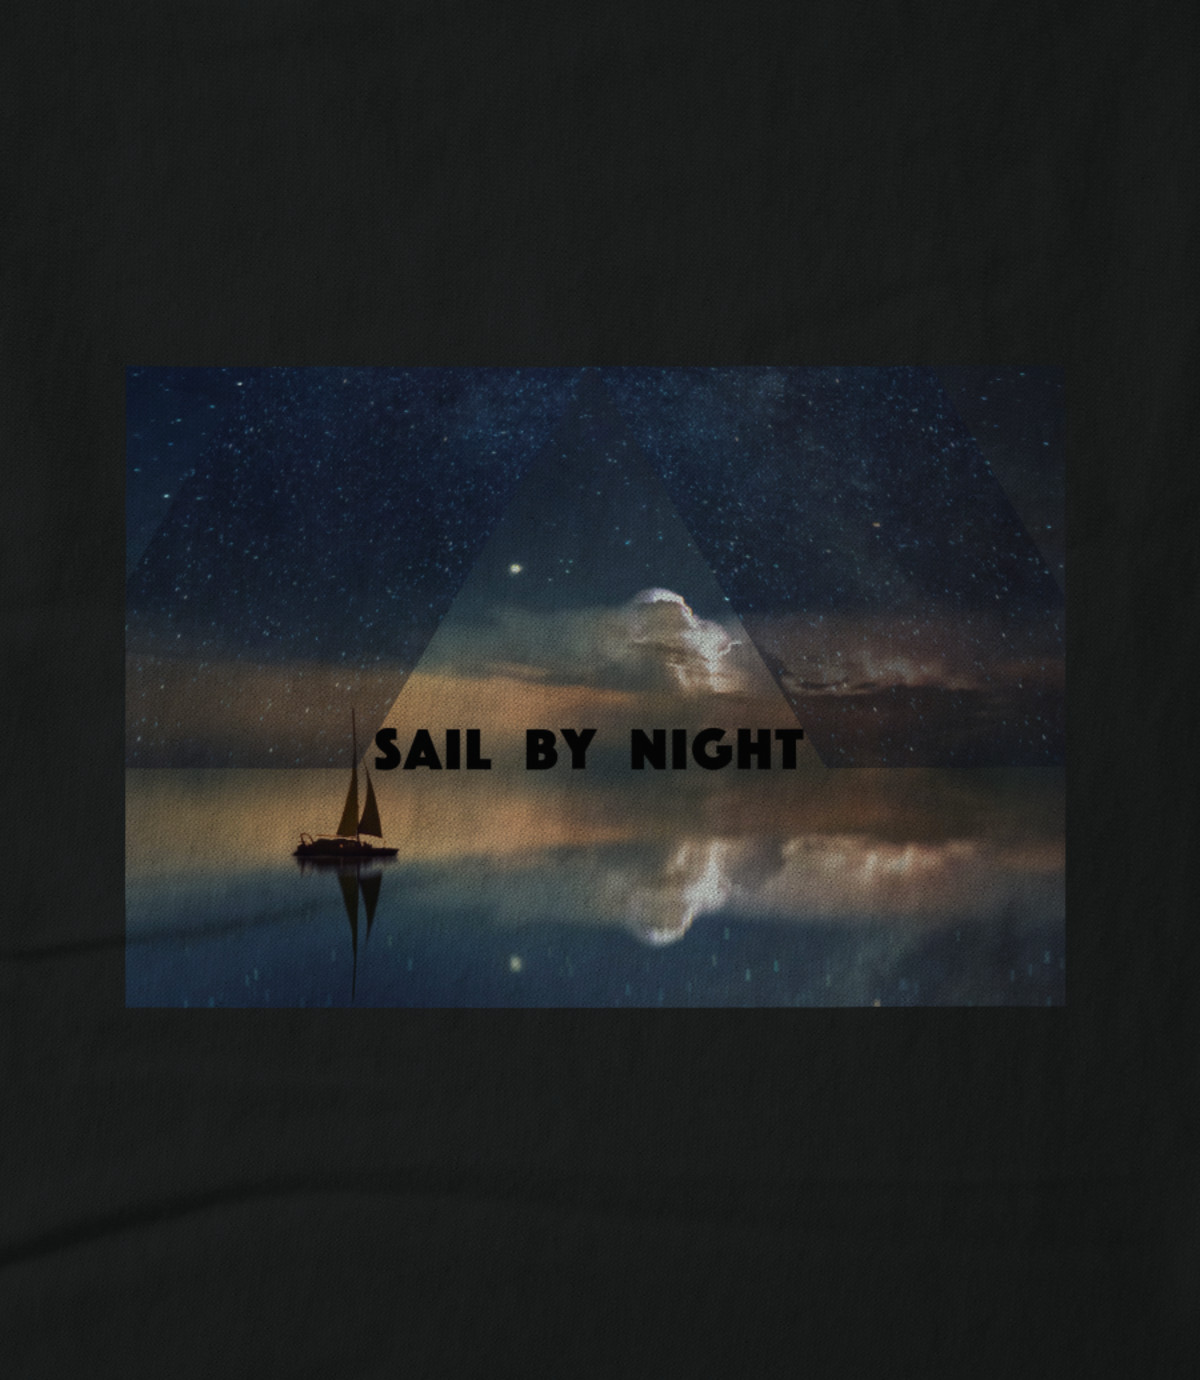 Sail by night under the stars 1541868385